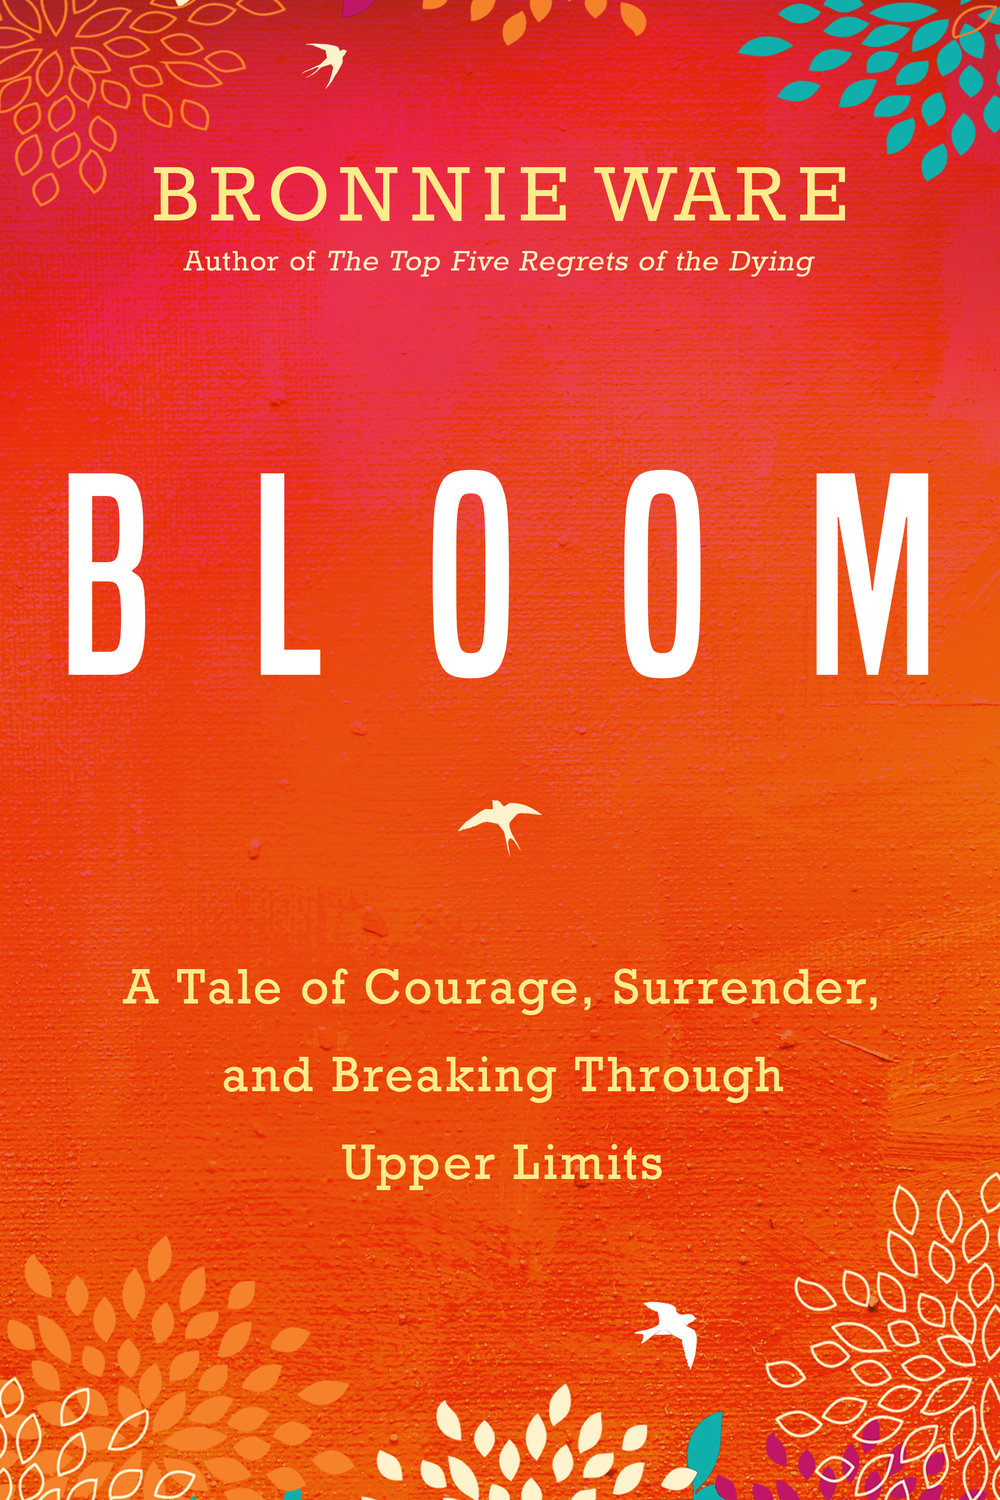 BLOOM IS THE FOLLOW UP MEMOIR TO 'THE TOP FIVE REGRETS OF THE DYING'.